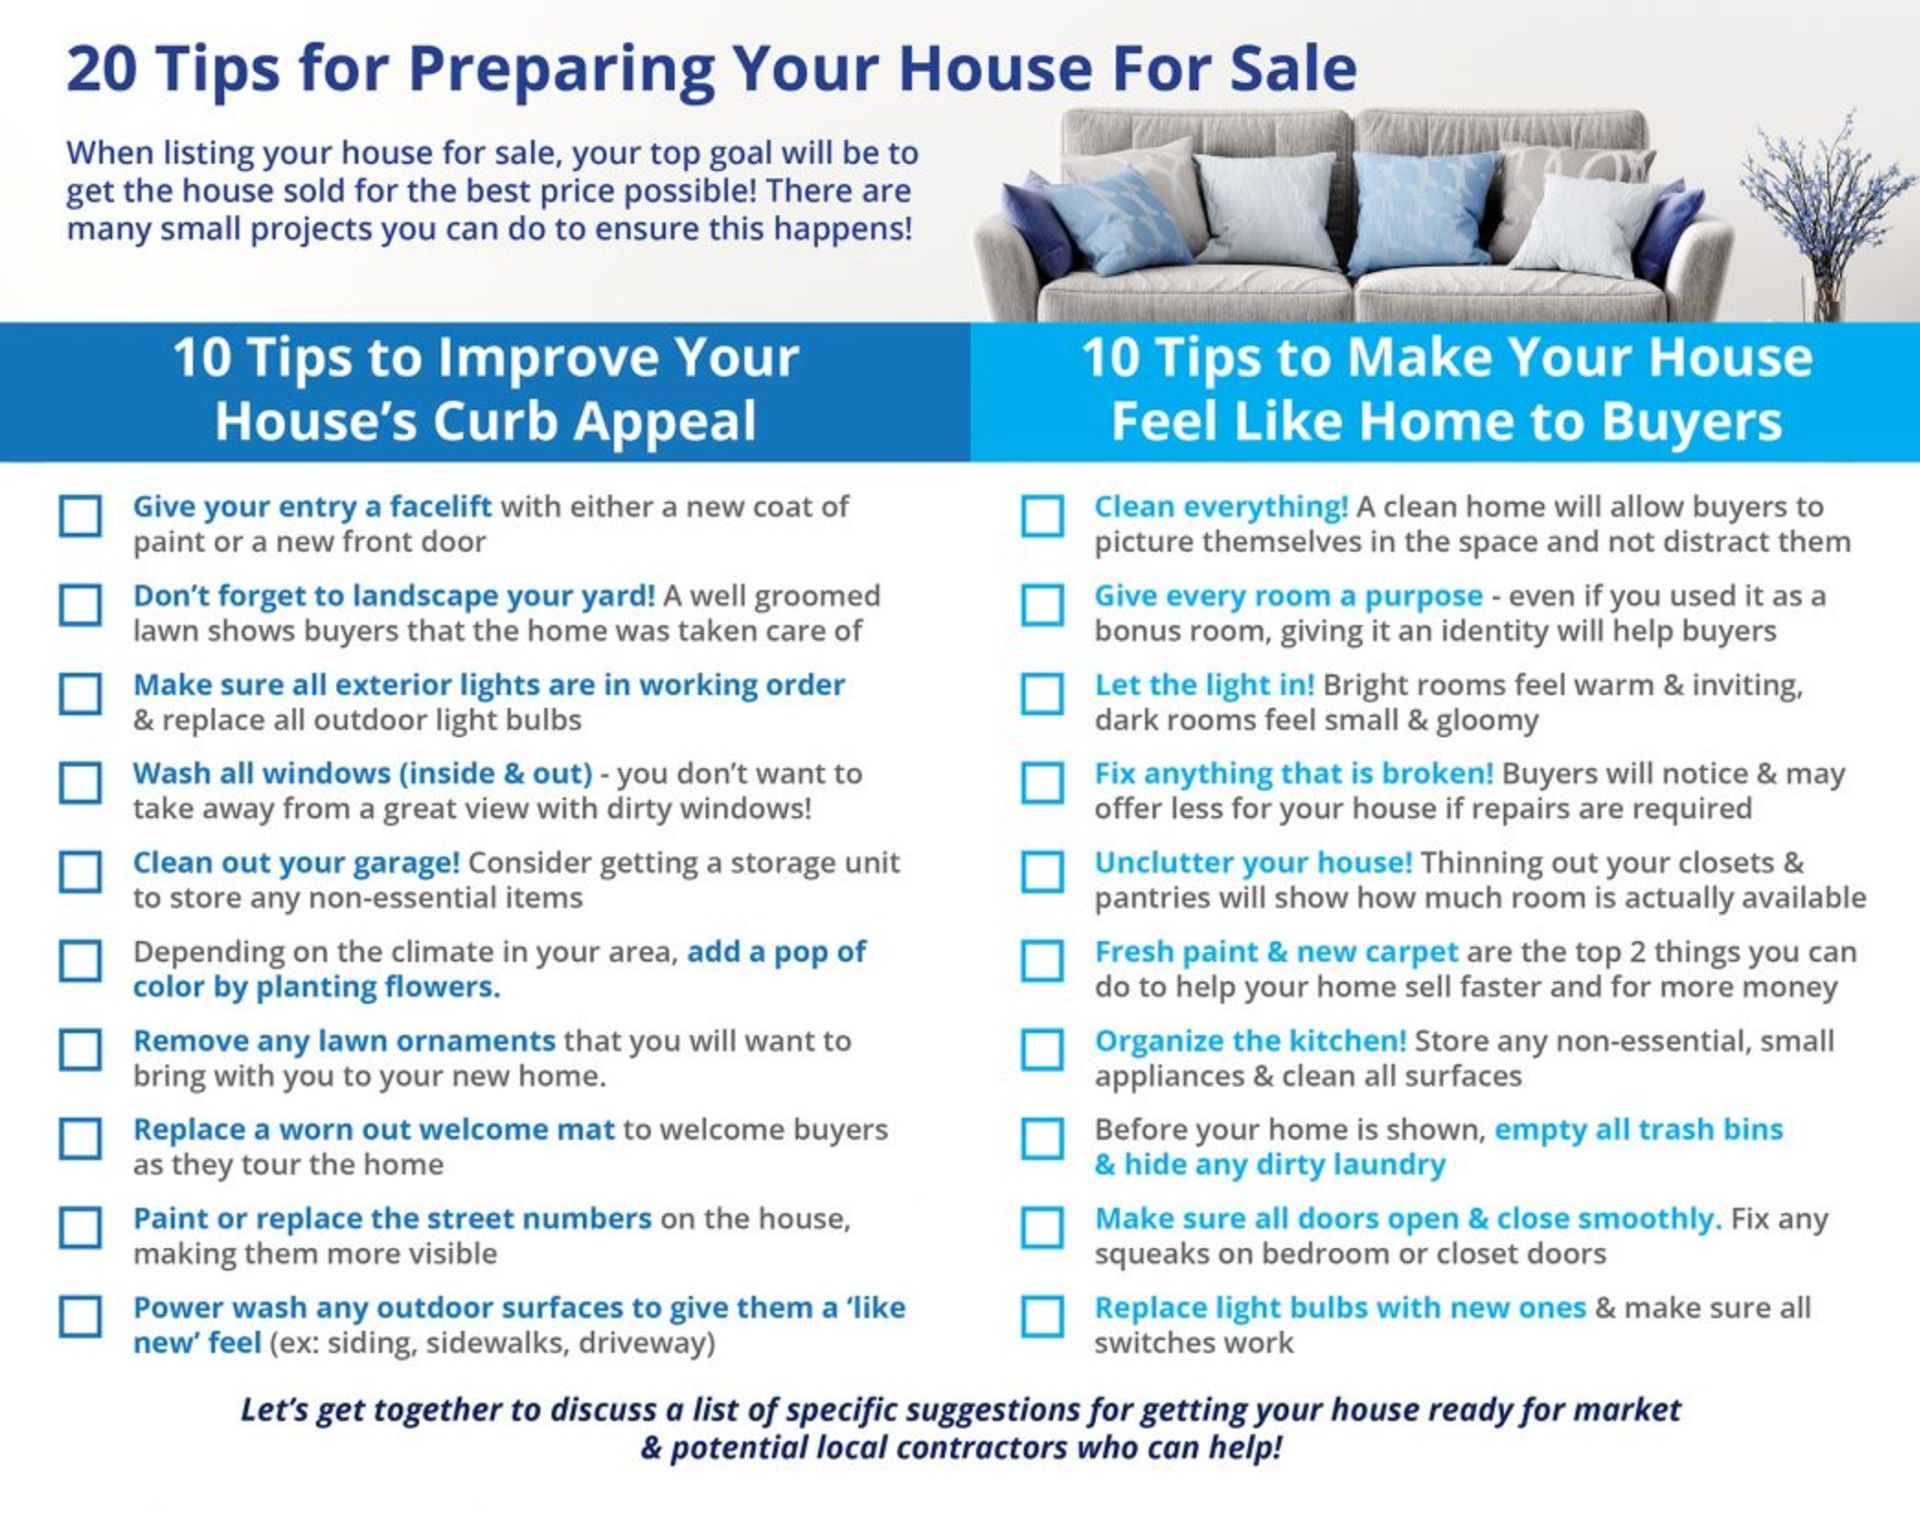 20 Tips for Preparing Your House for Sale This Spring [INFOGRAPHIC]